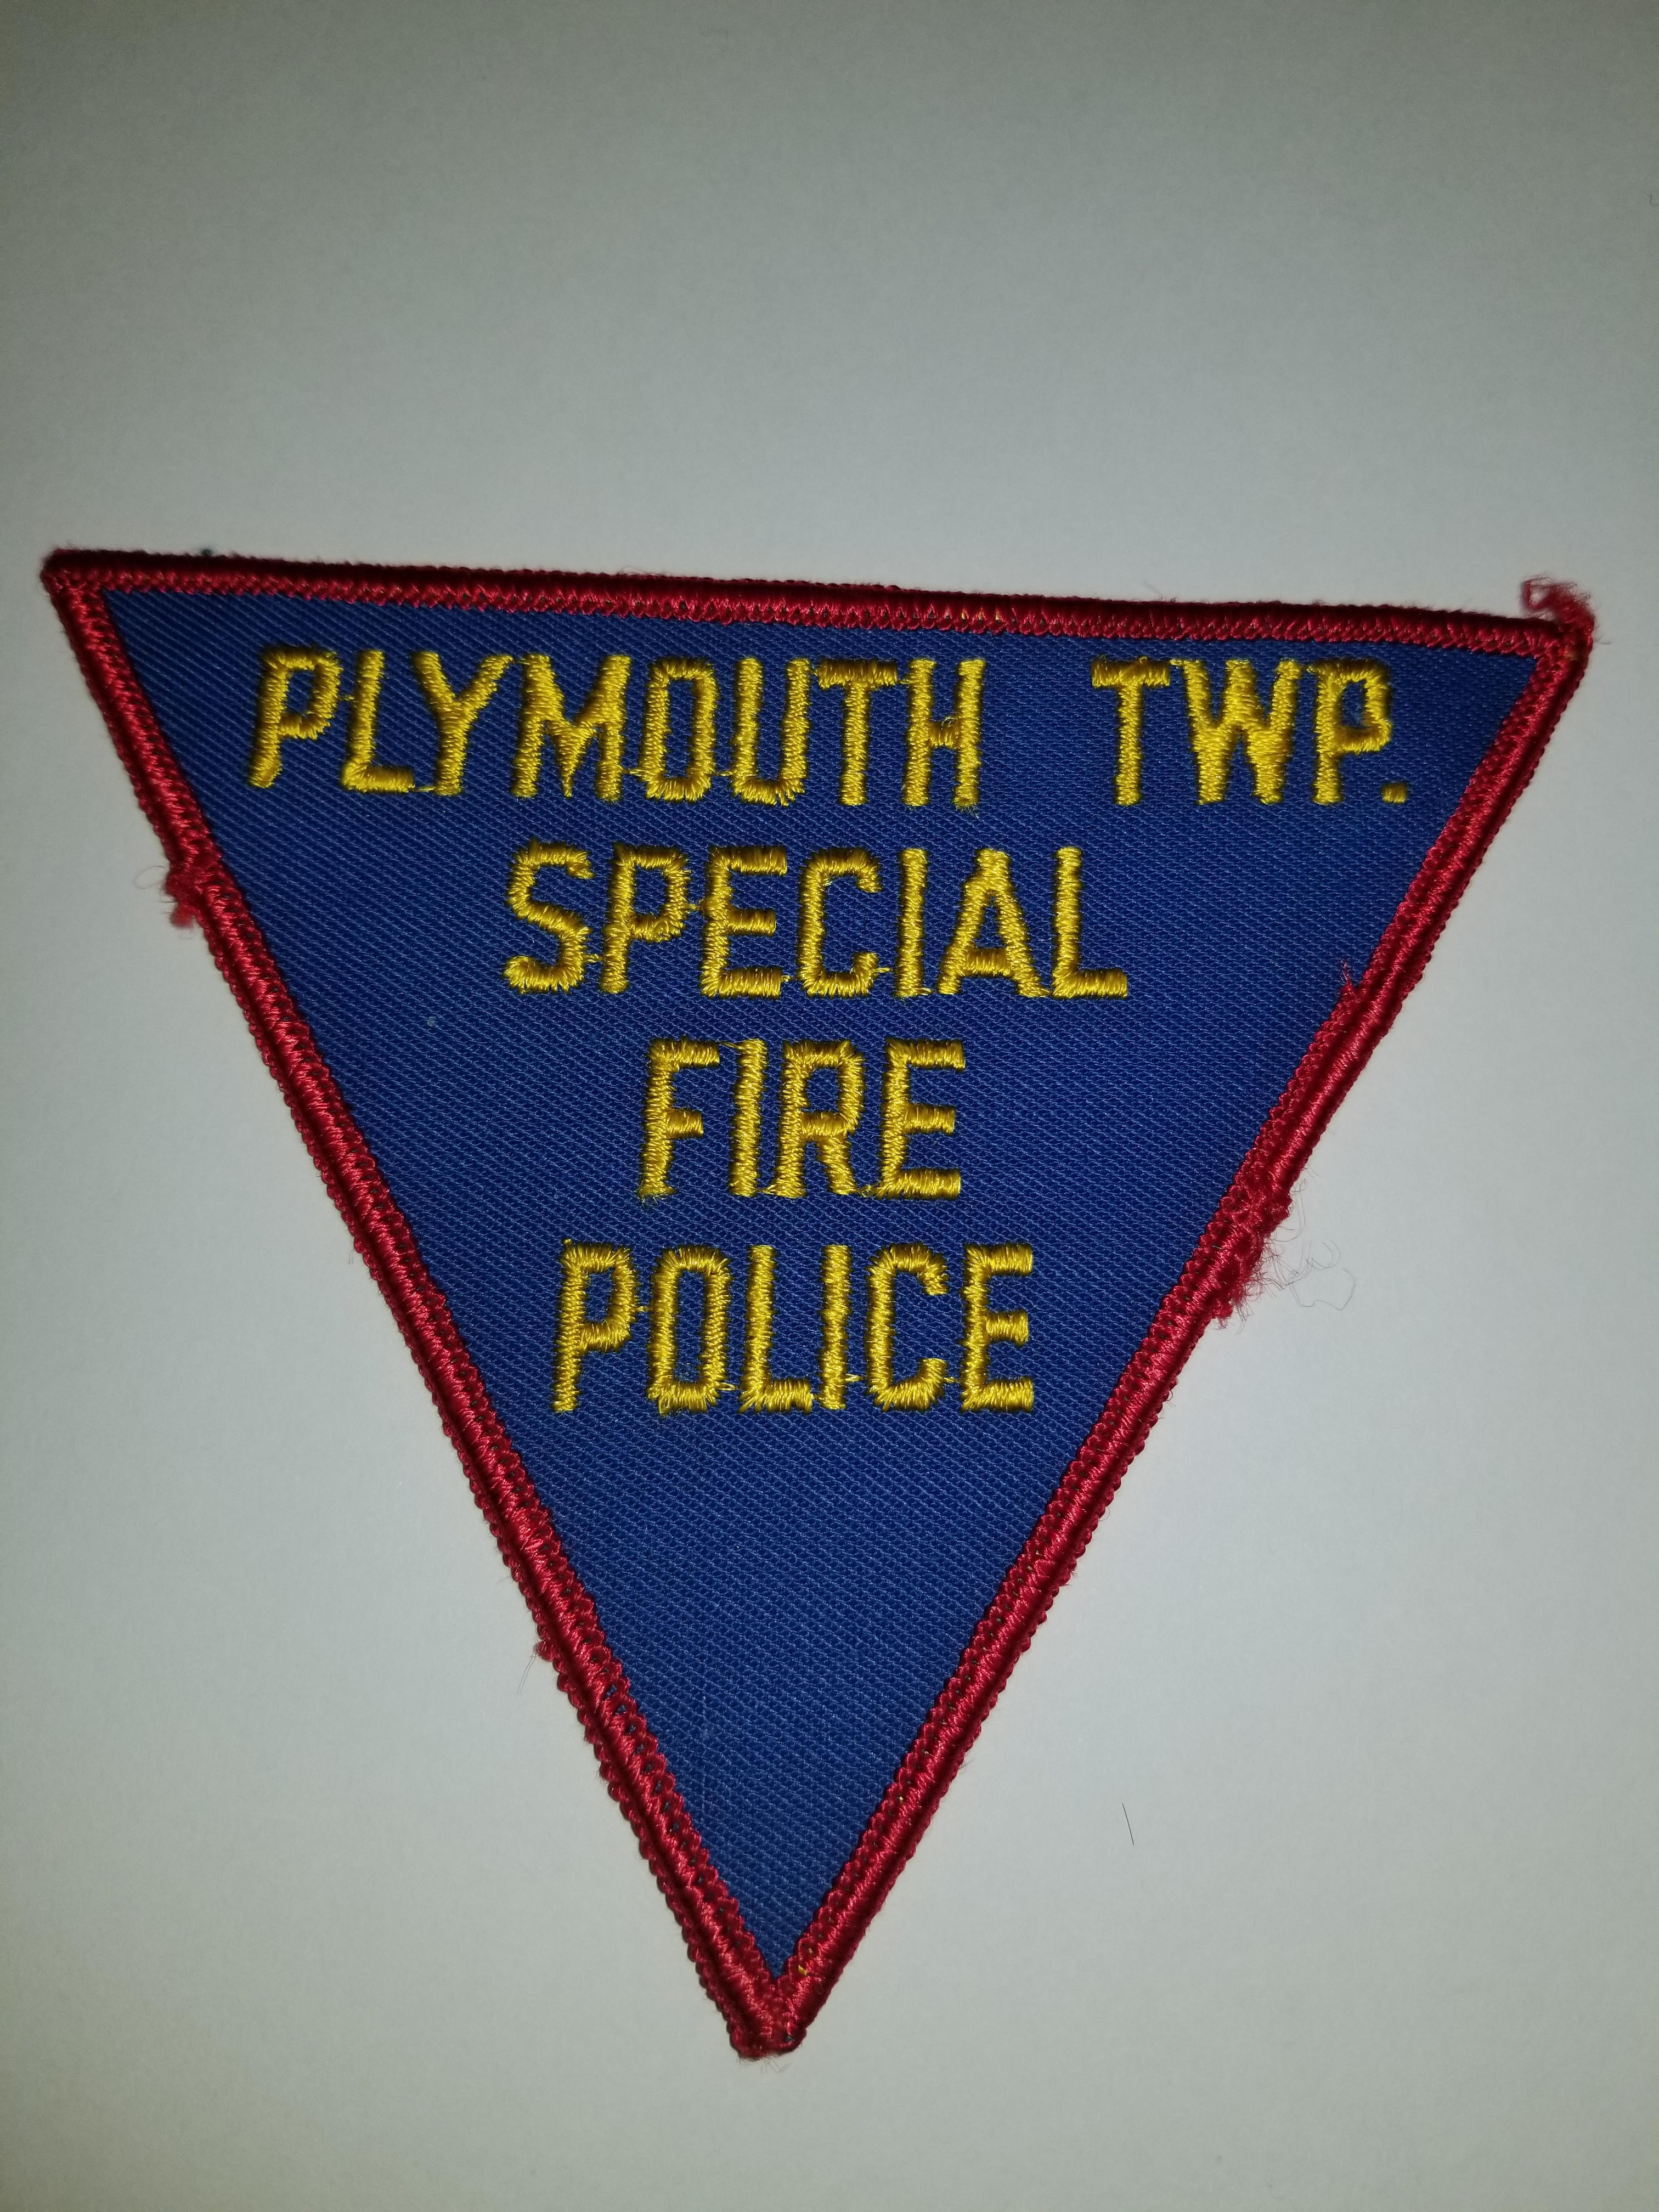 Plymouth Township PA Special Fire Police